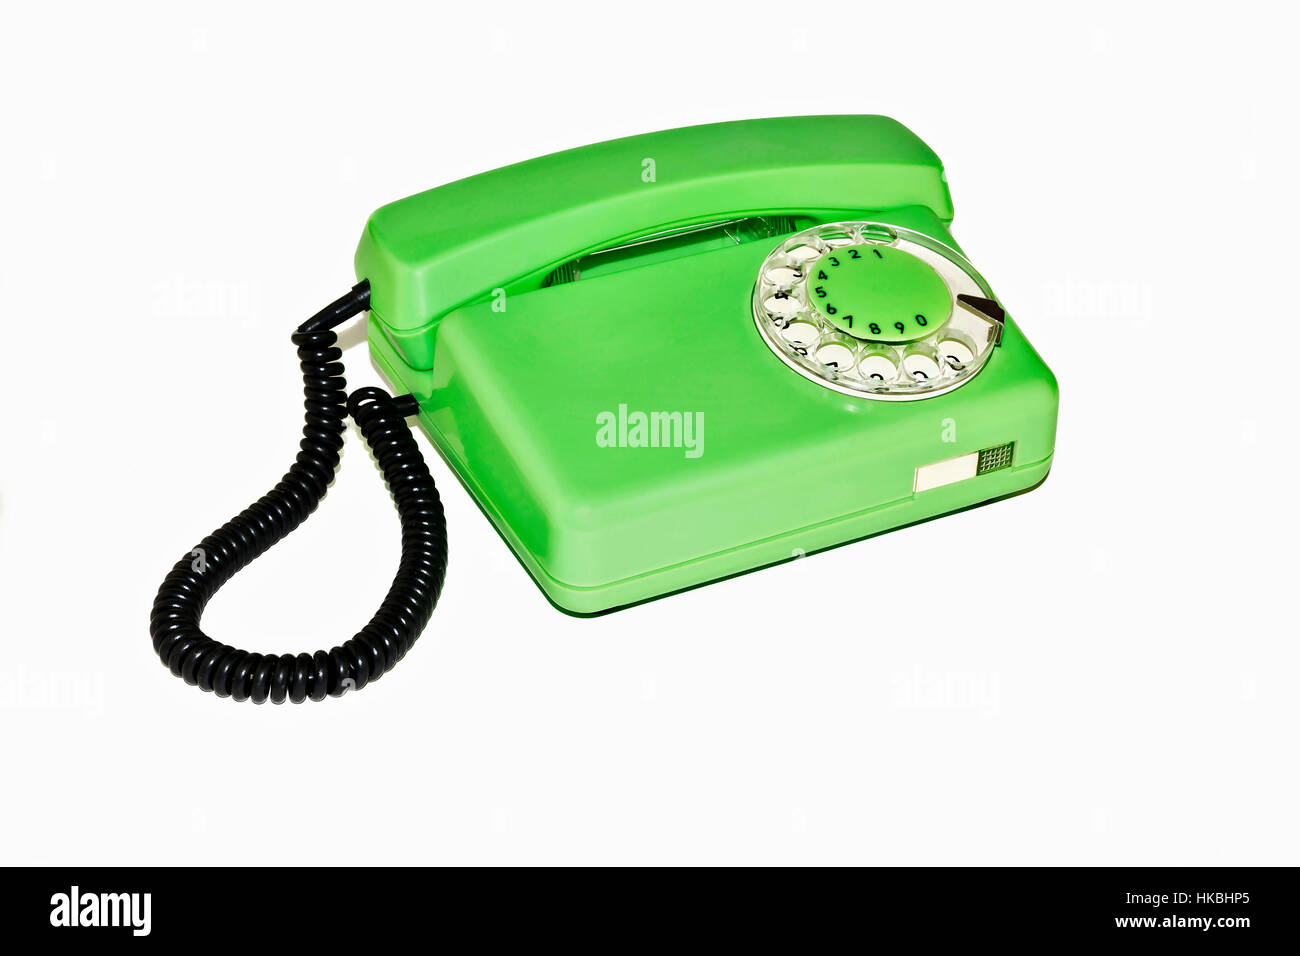 On a white background is an old telephone with a rotary dialer - Stock Image